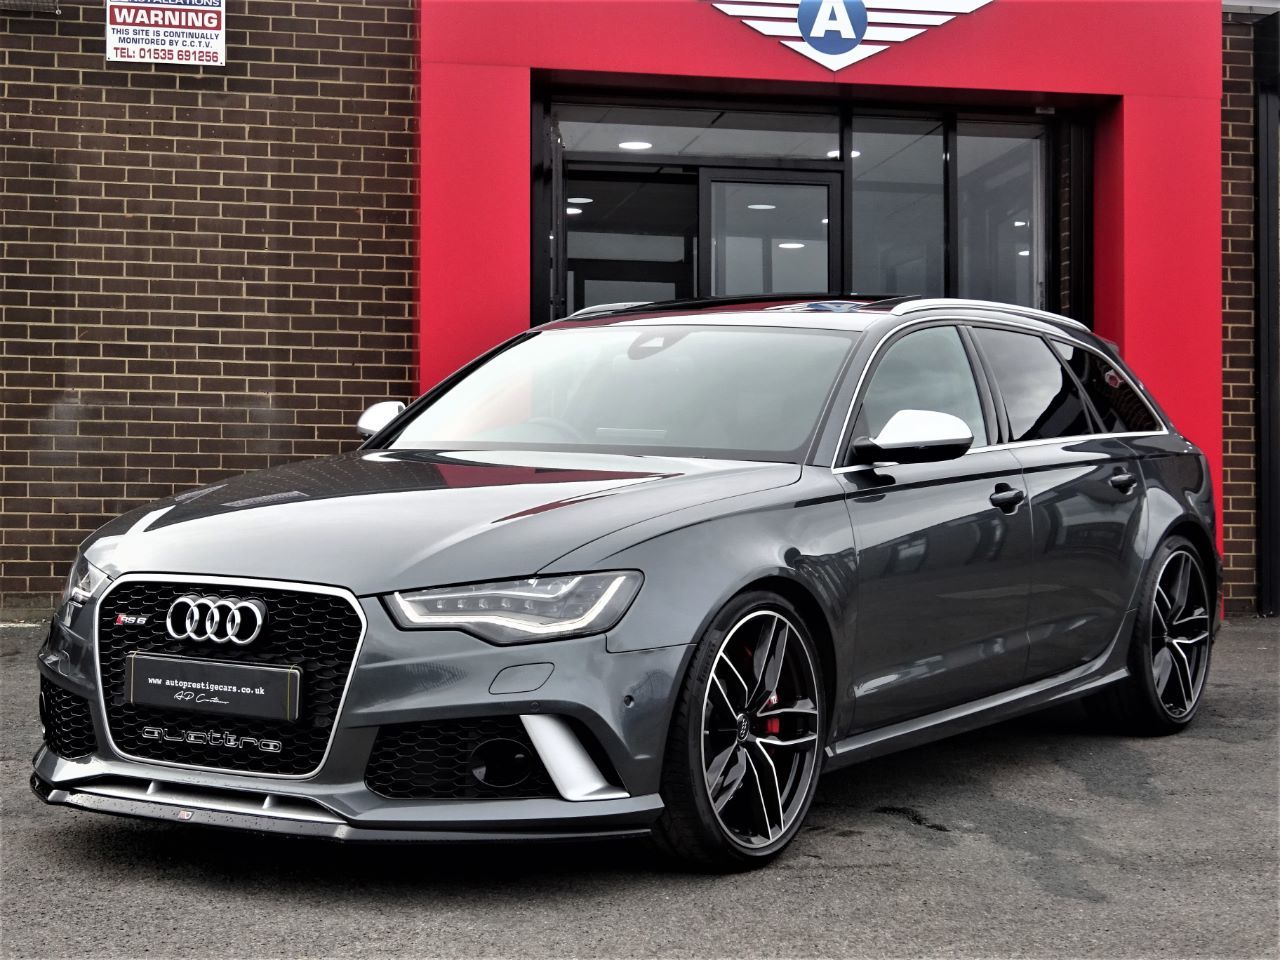 Audi RS6 4.0T FSI V8 Bi-Turbo RS6 Quattro WITH ALL THE EXTRAS WARRANTY RECENT SERVICE TYRES SOFT DOORS 64 REG Estate Petrol Grey at Autoprestige Bradford